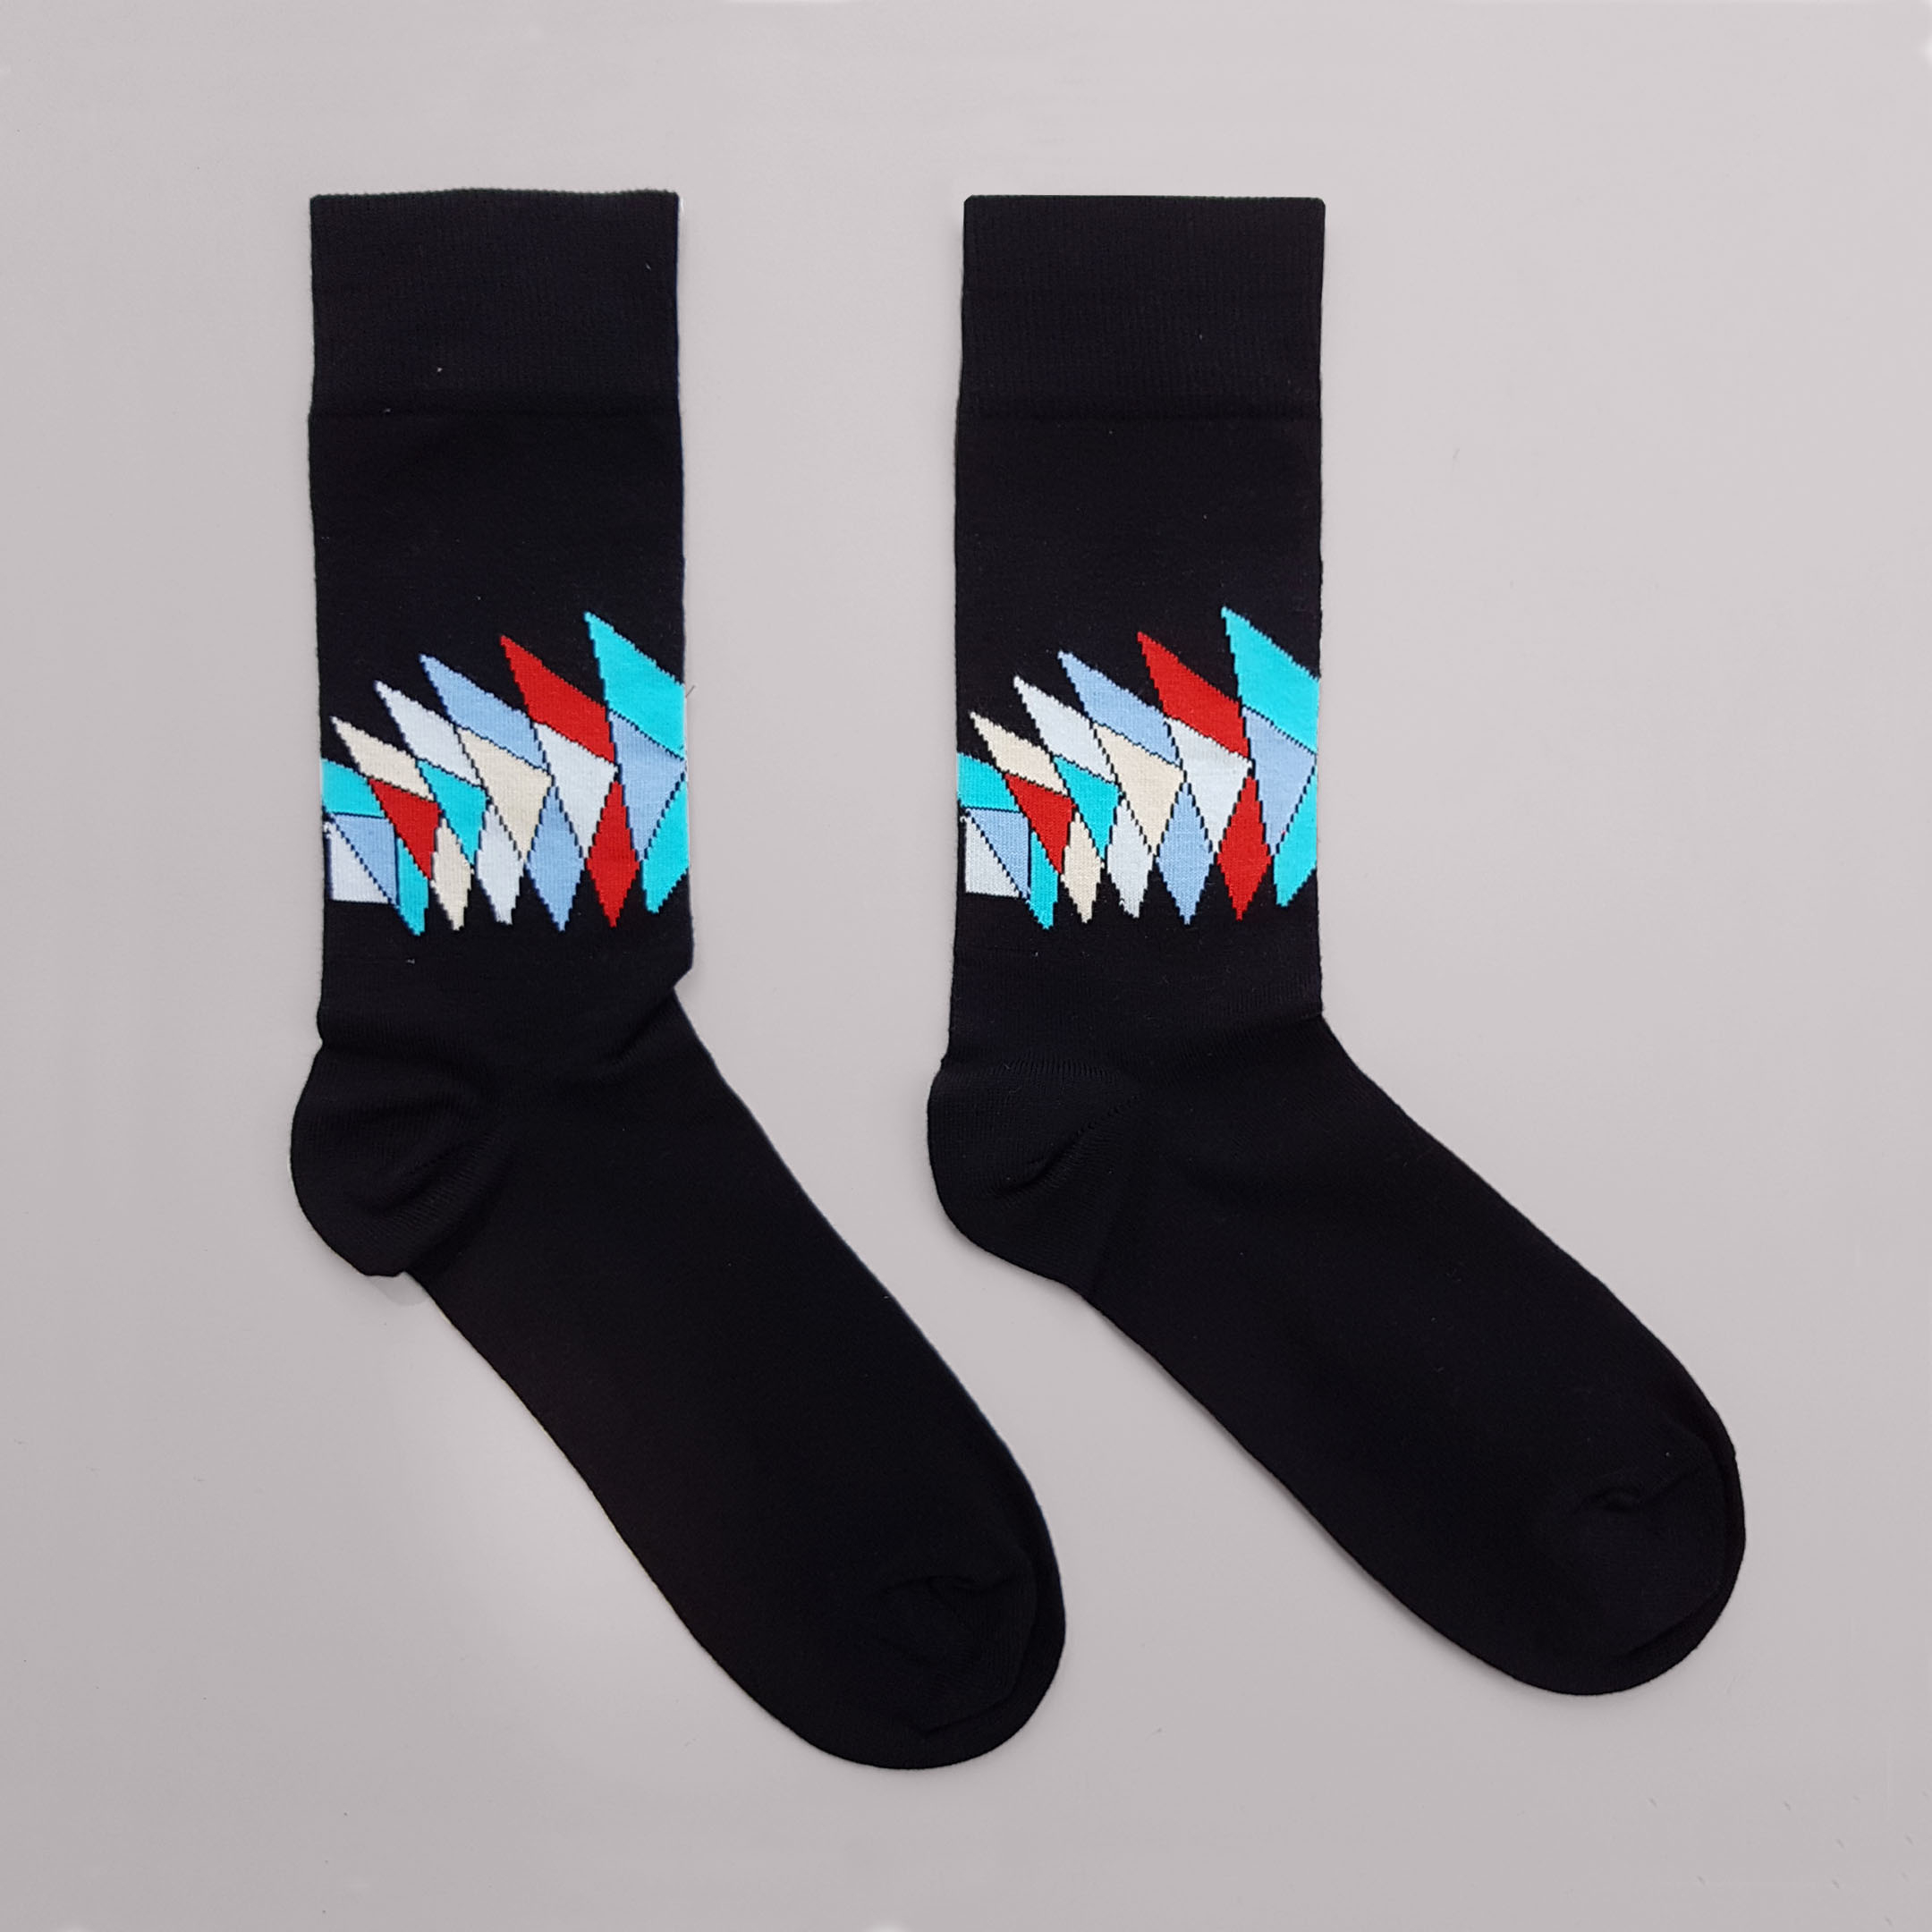 Buy National Film Theatre Socks